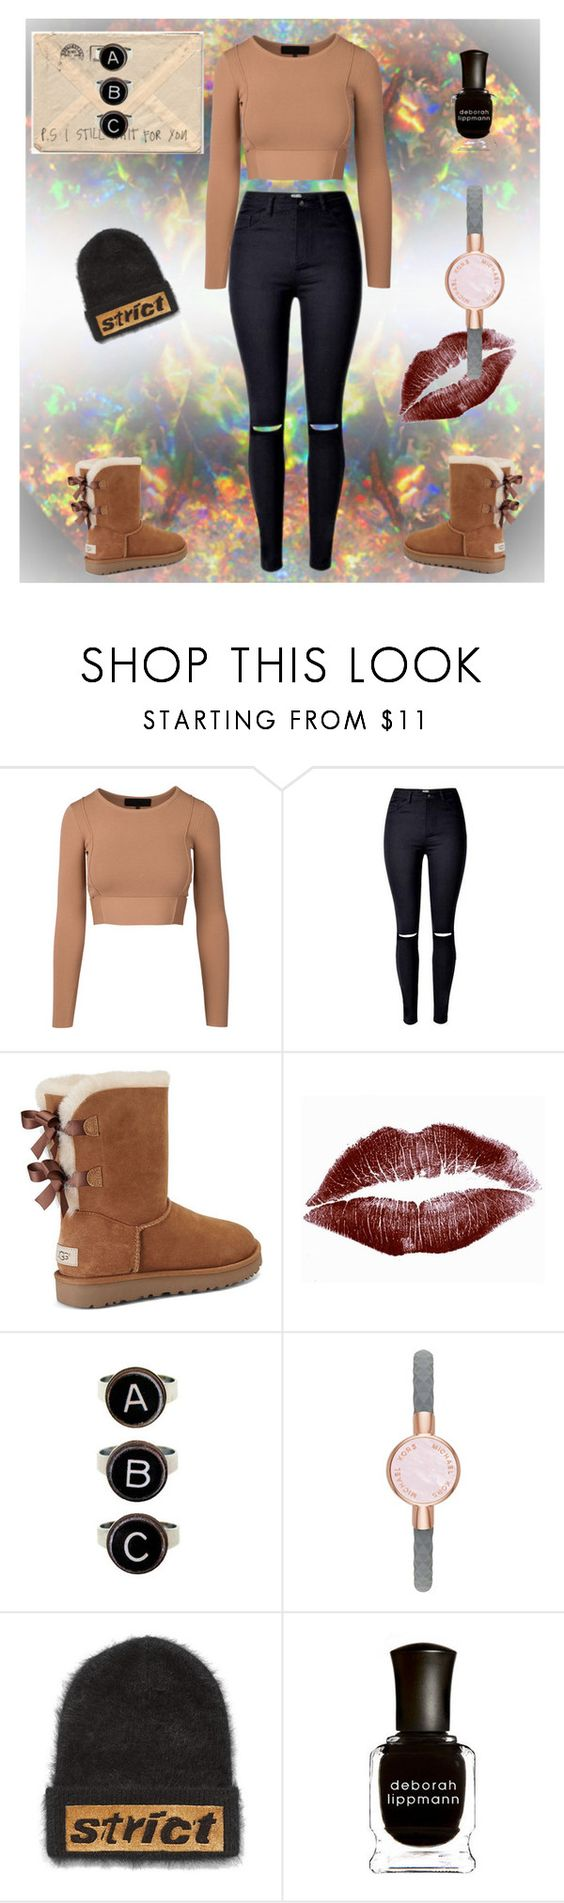 """""""Autumn"""" by stephshadowhunter ❤ liked on Polyvore featuring UGG, Rock 'N Rose, Michael Kors, Alexander Wang and Deborah Lippmann"""